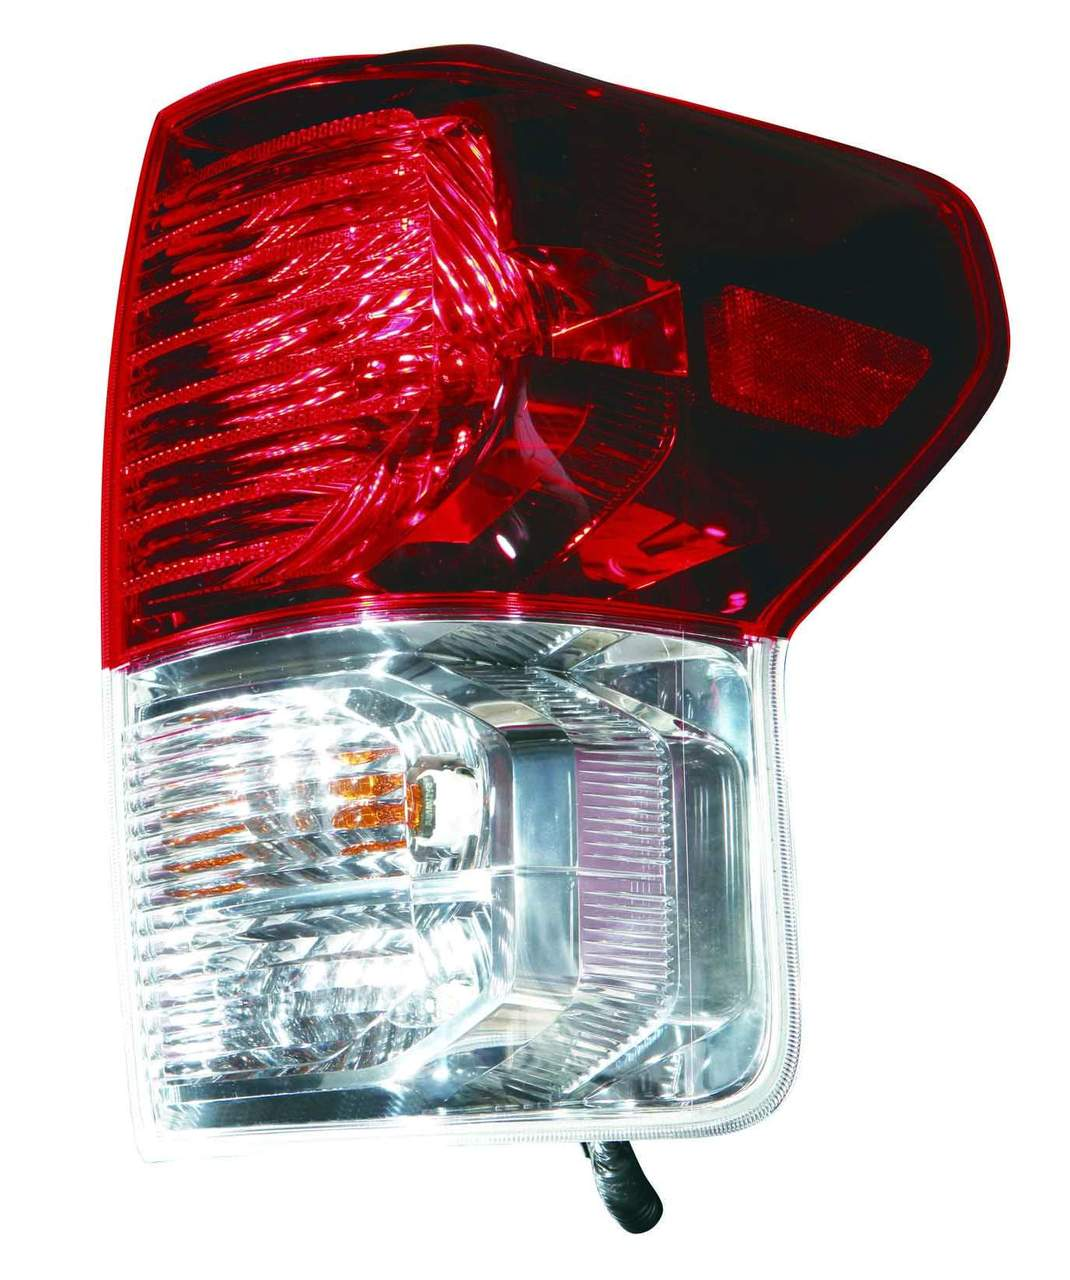 Toyota Tundra 2010 2011 2012 2013 tail light right passenger